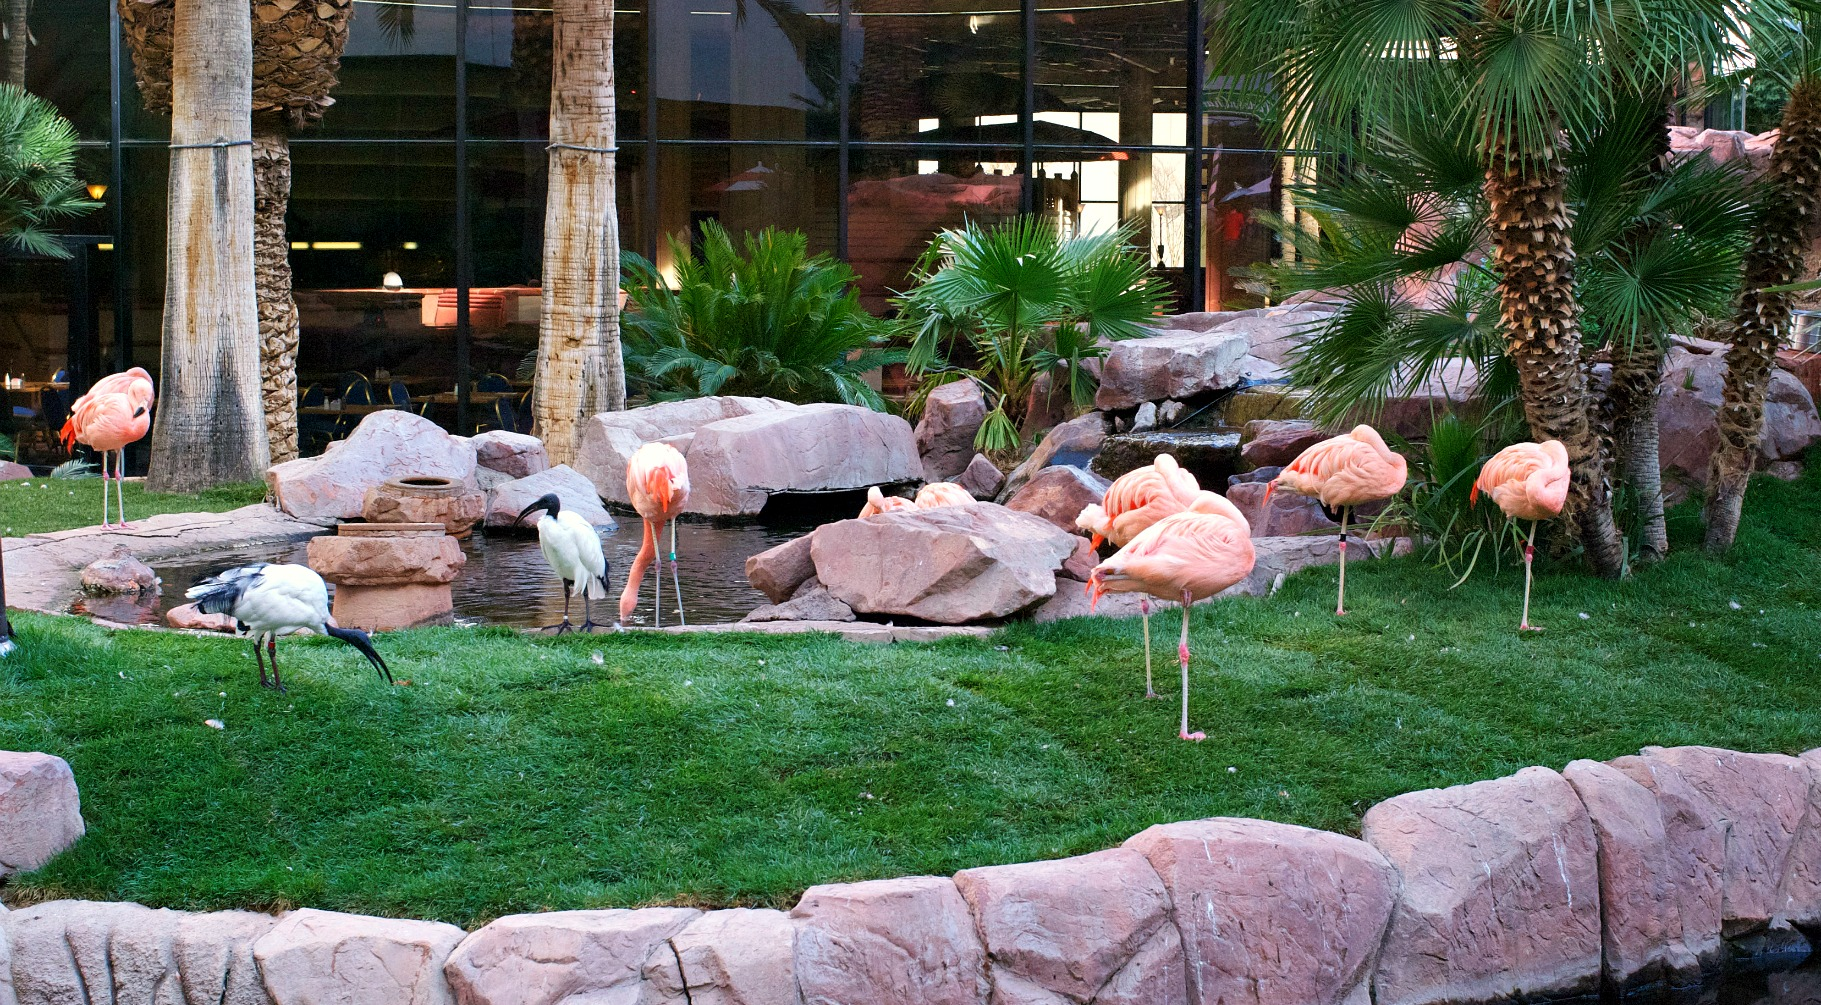 One of the coolest Free Things To Do In Las Vegas is the Wild Life Habitat at The Flamingo Hotel